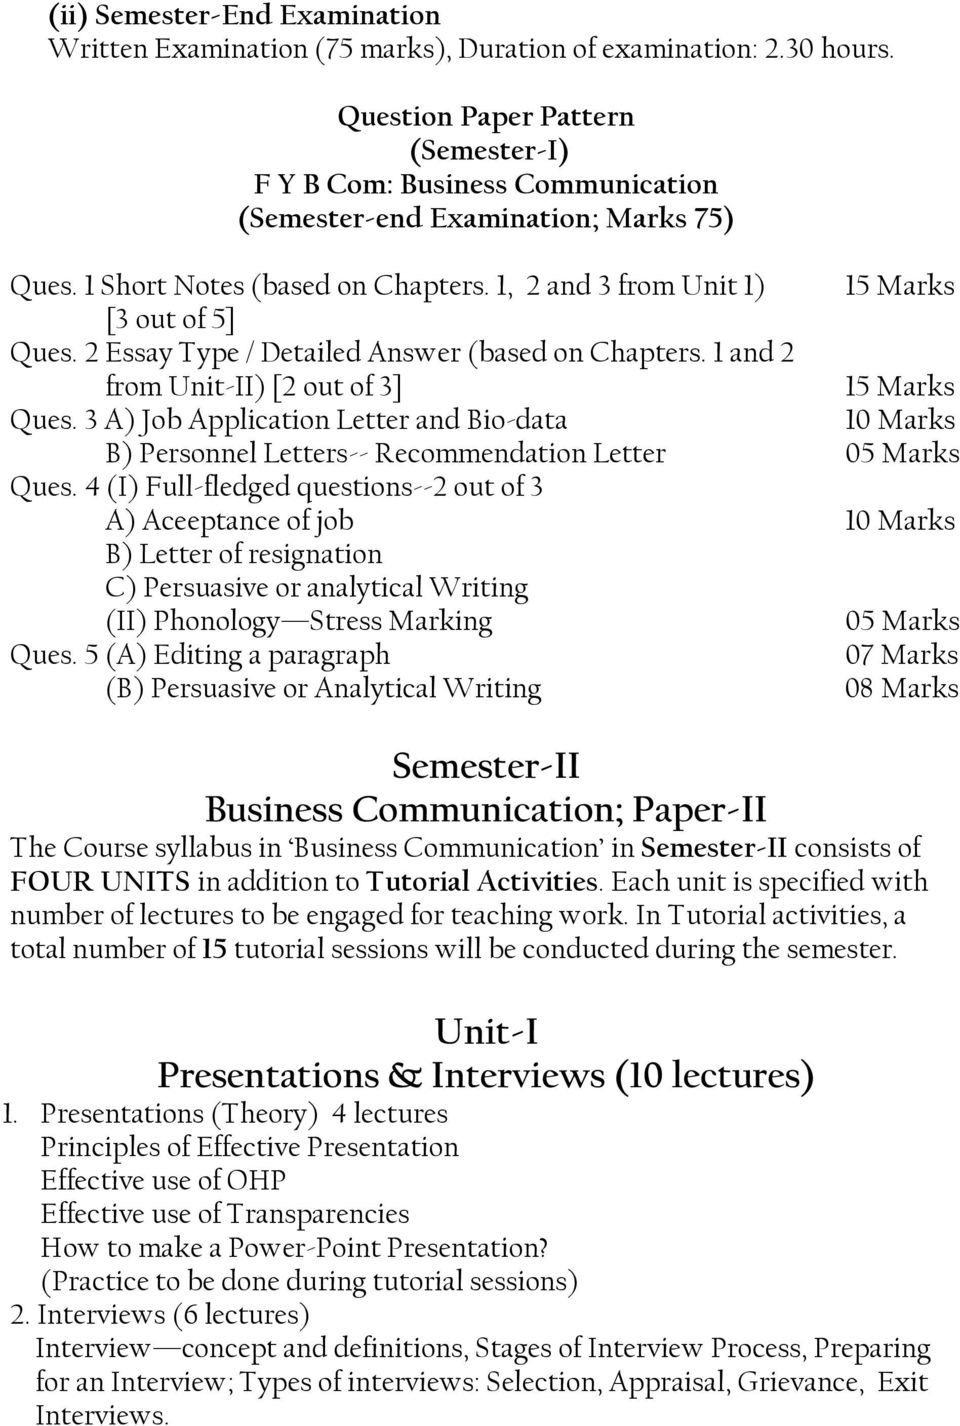 essay on business communication business communication in english written bestessayservices com